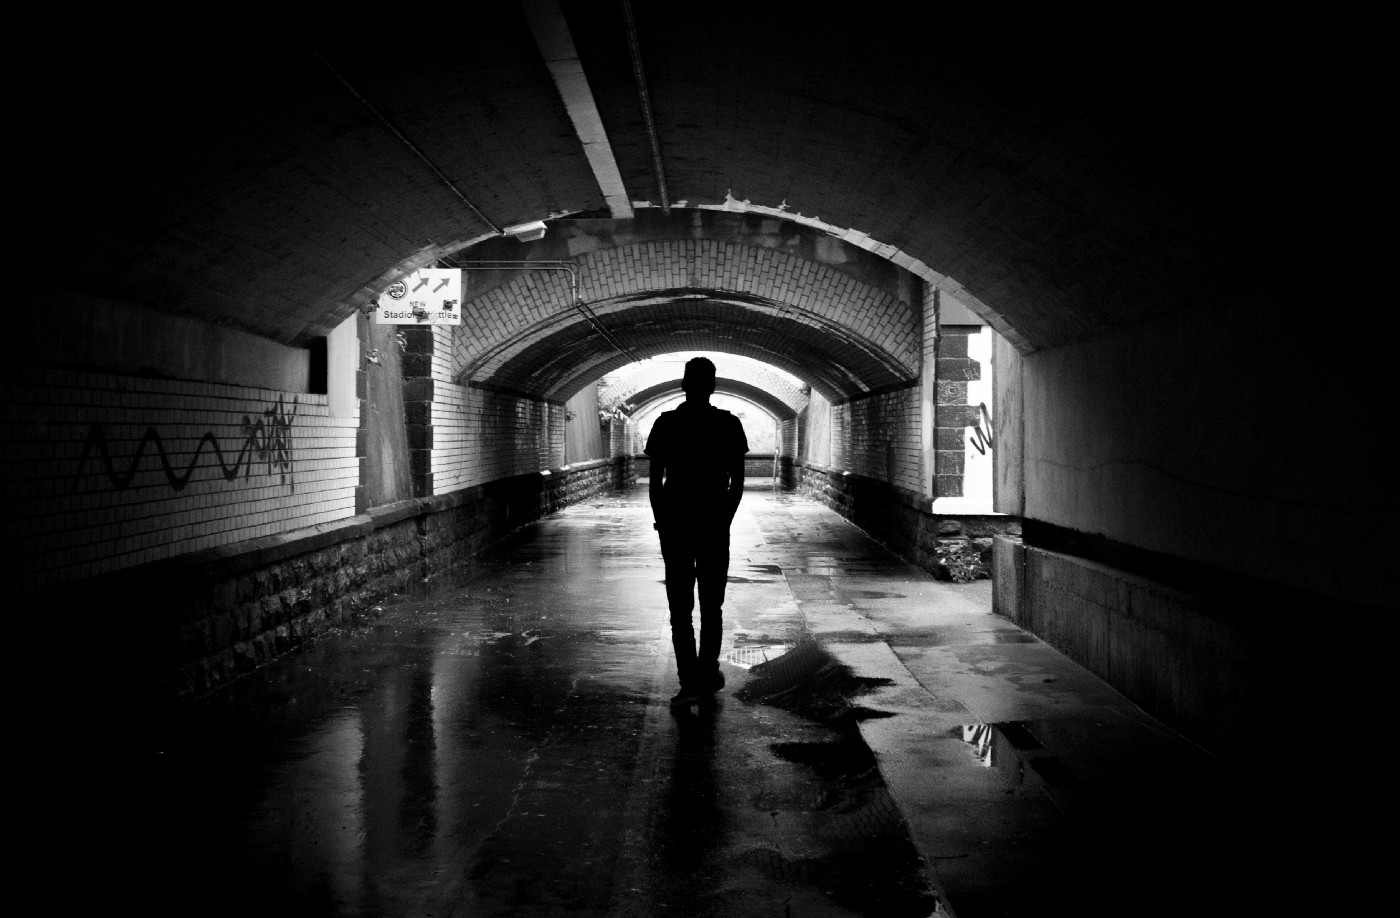 A person walks in a dimly lit subway. The photograph appears to be black and white due to the lighting. It is very dark, with a spotlight on the center of the image and black around the edges.